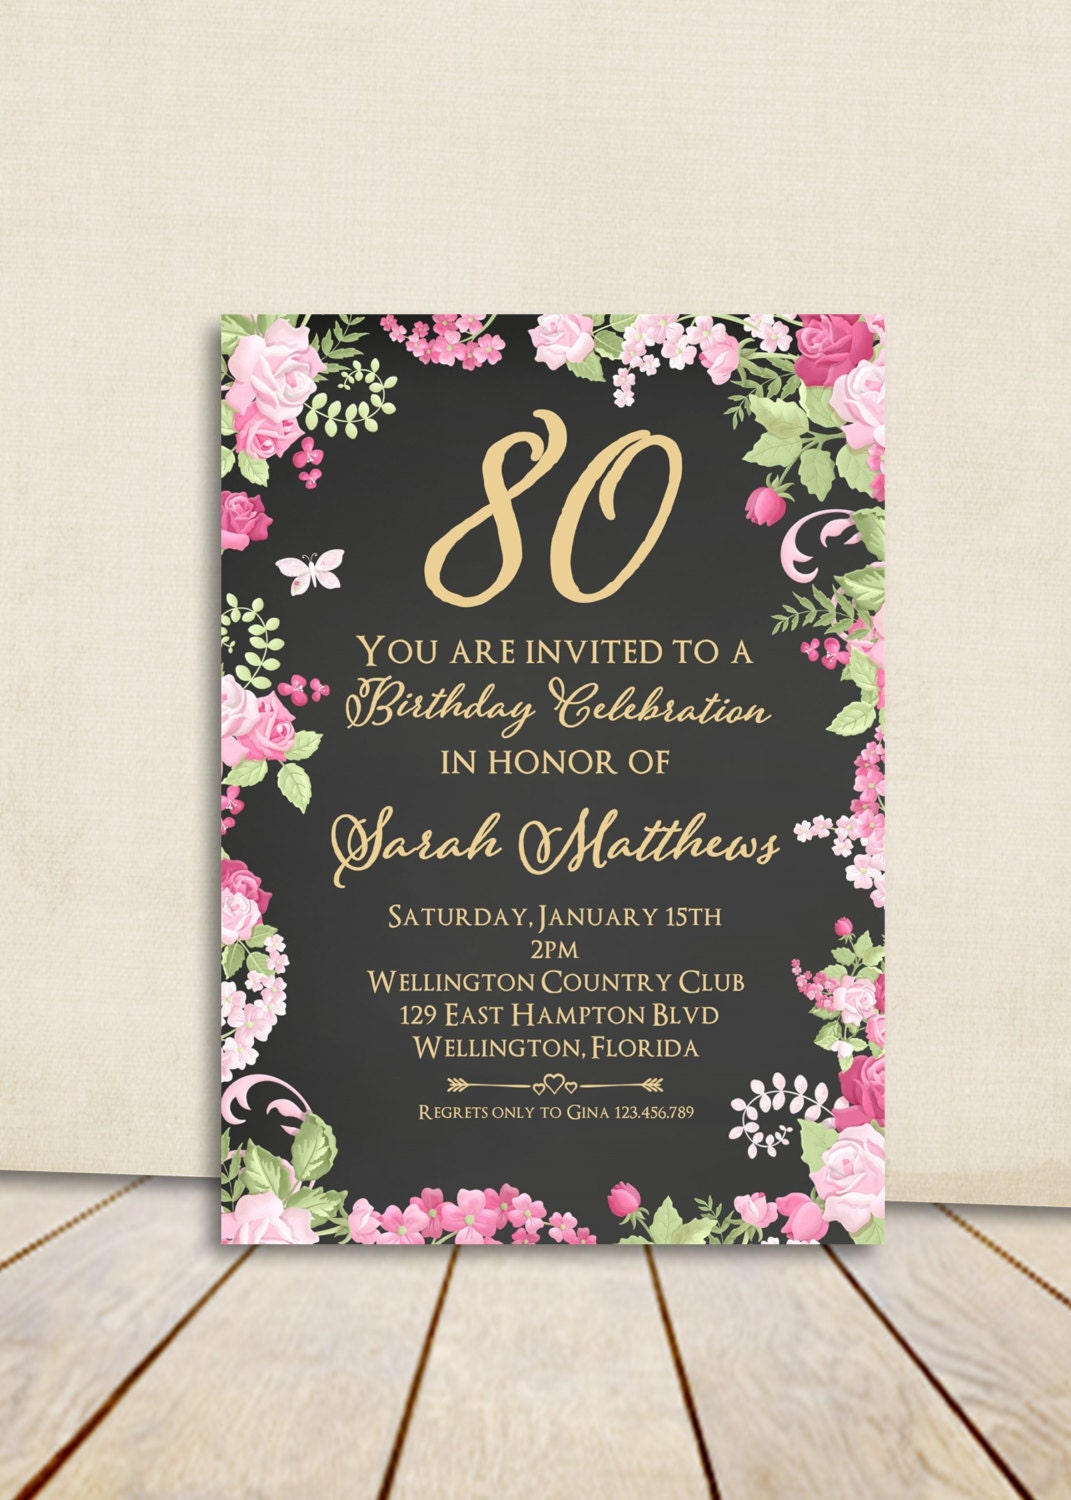 Cottage chic chalkboard 80th birthday invitation any age adult zoom filmwisefo